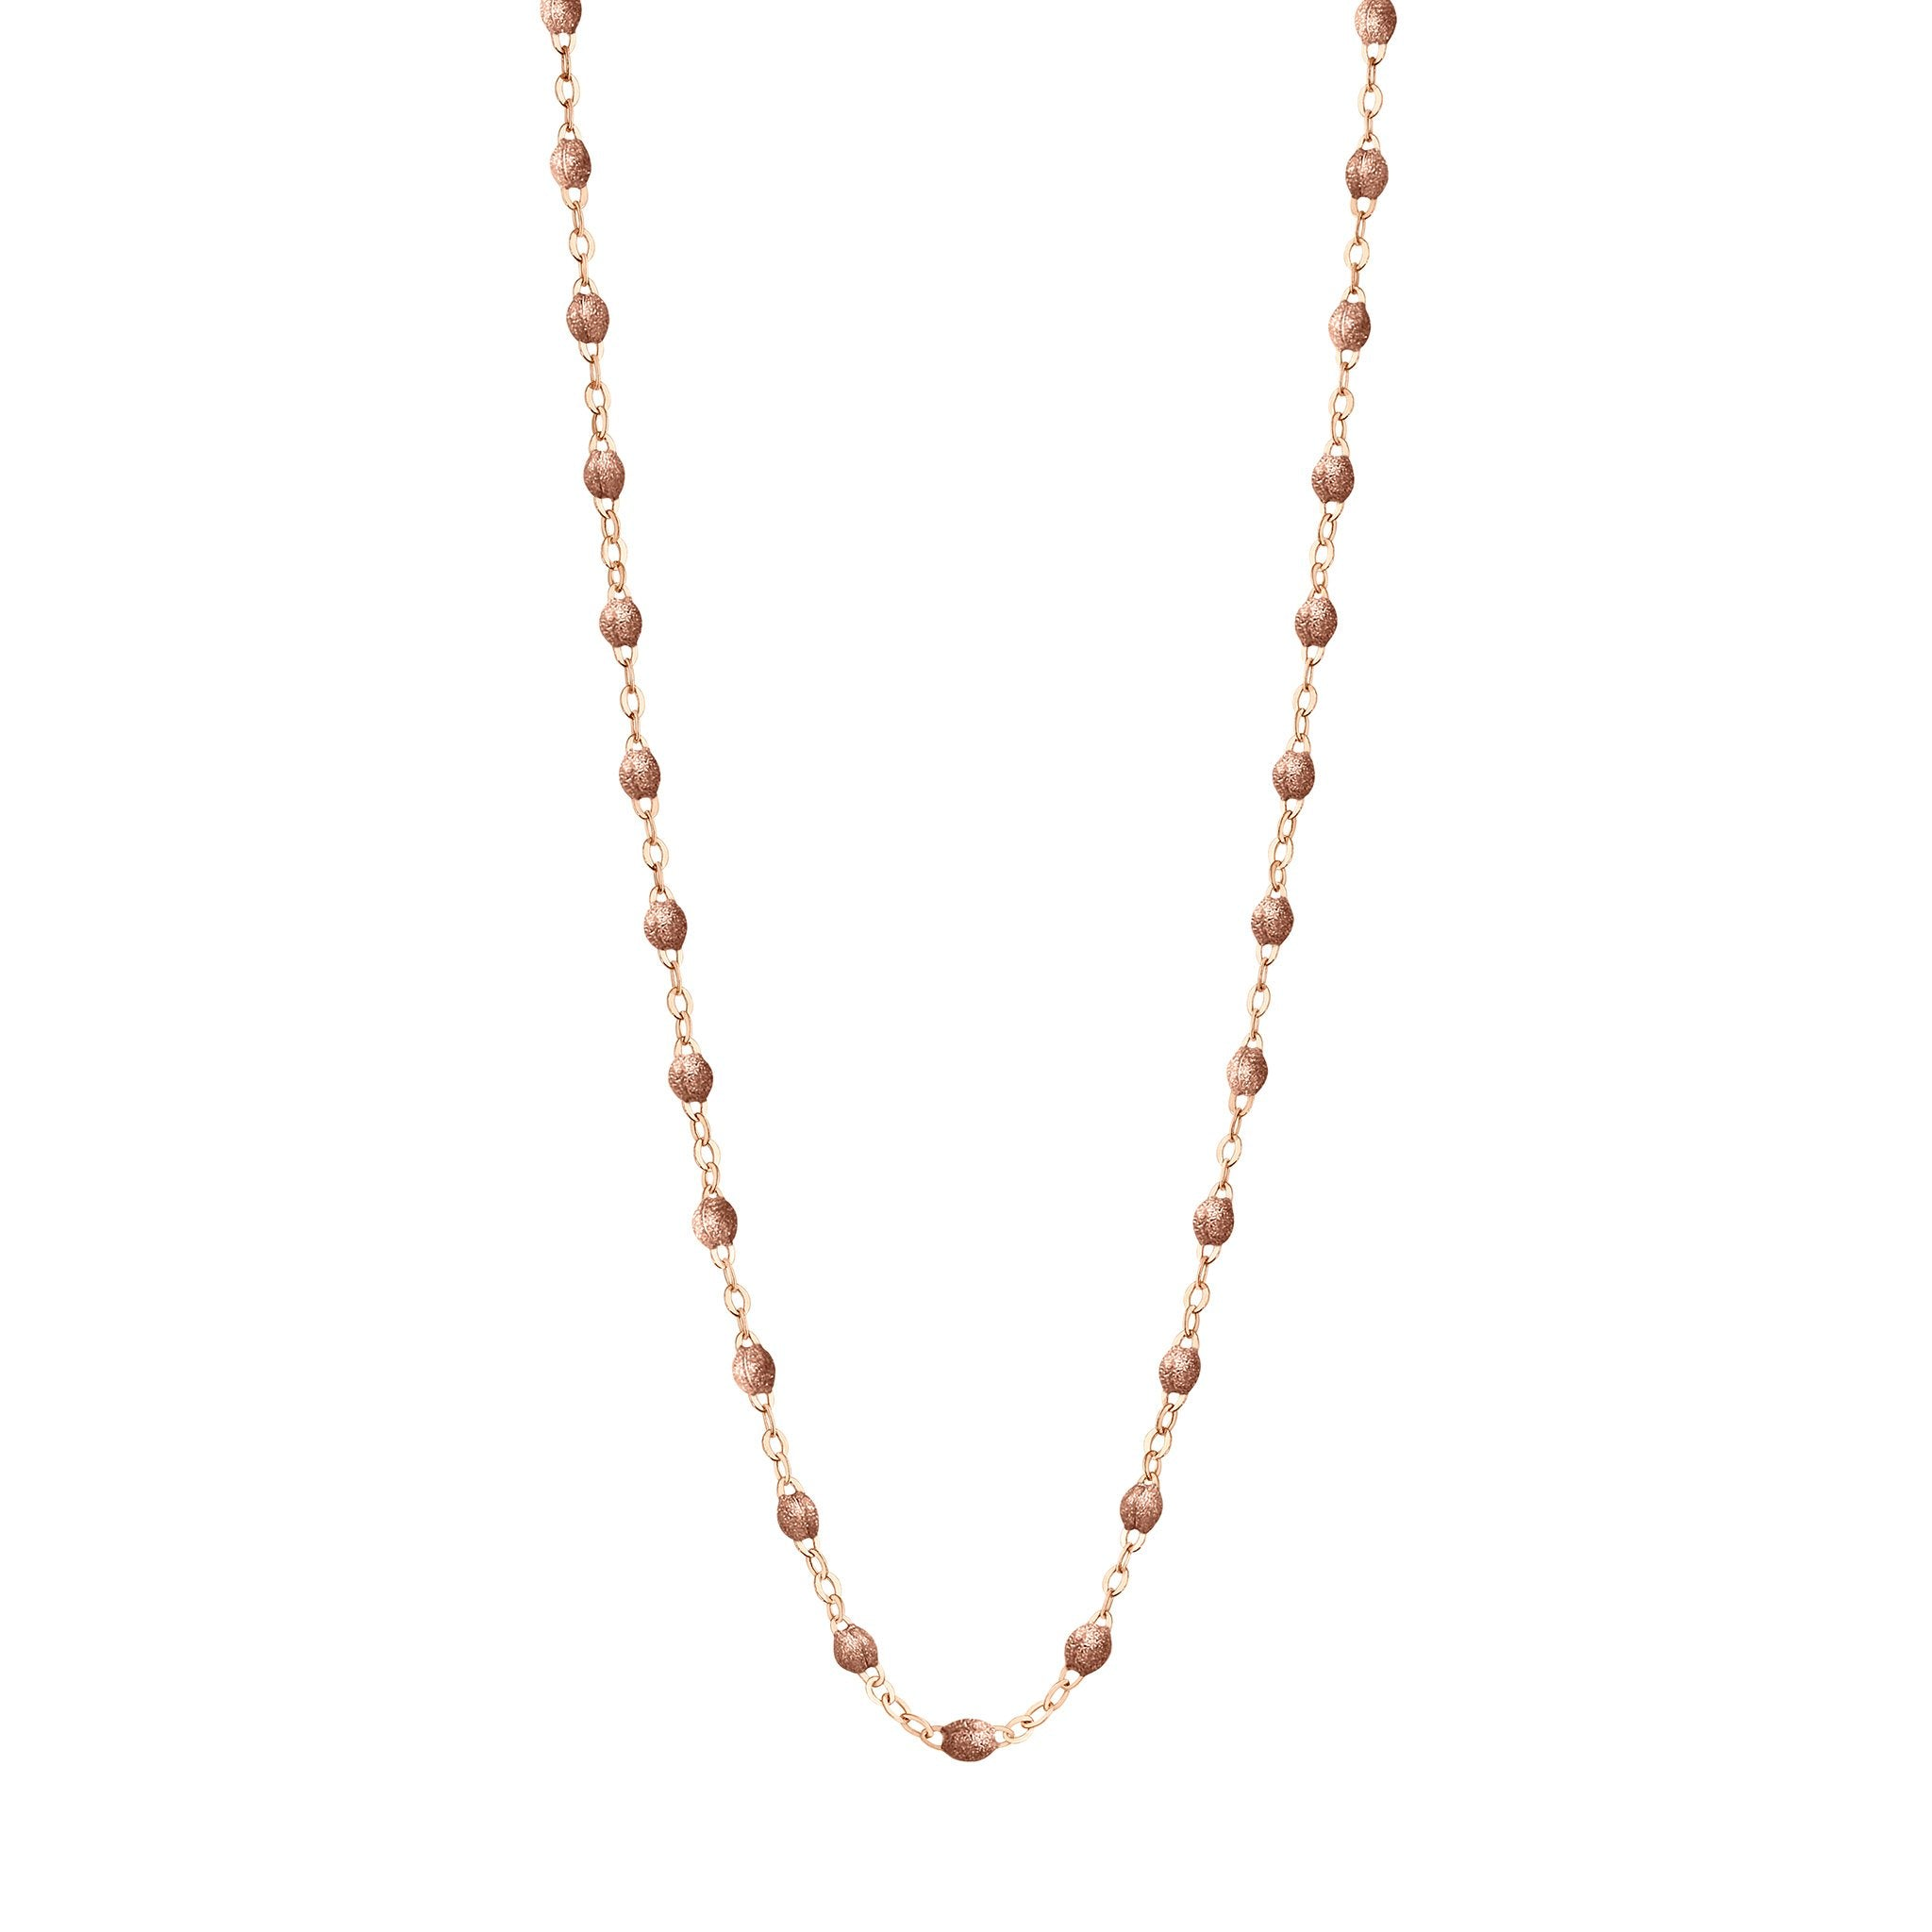 Gigi Clozeau - Classic Gigi Copper necklace, Rose Gold, 16.5""